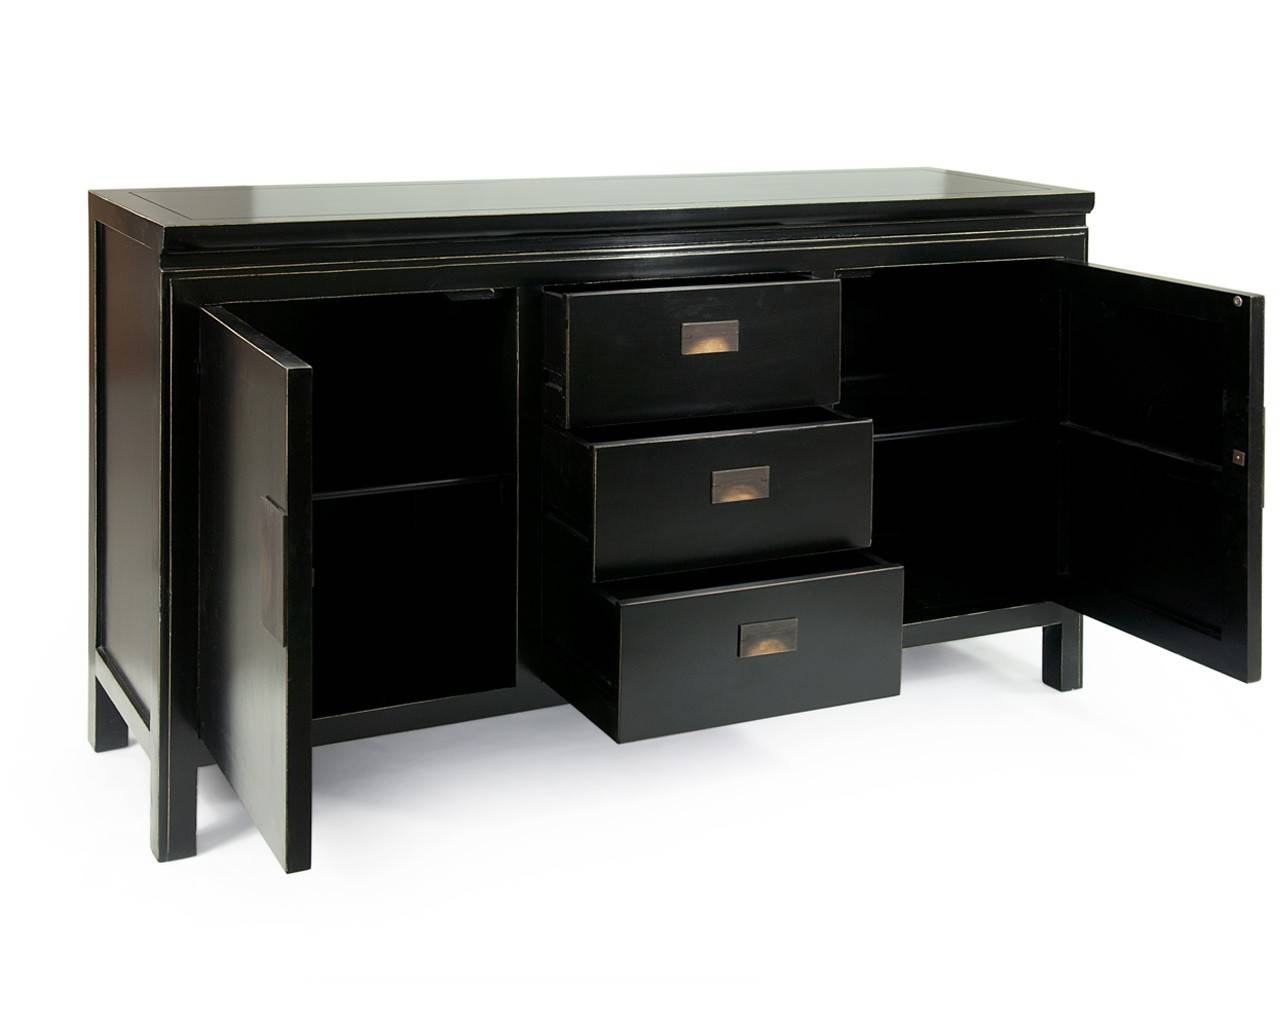 Oriental Black Lacquered Sideboards - Shanxi Large inside Black Sideboards (Image 13 of 30)